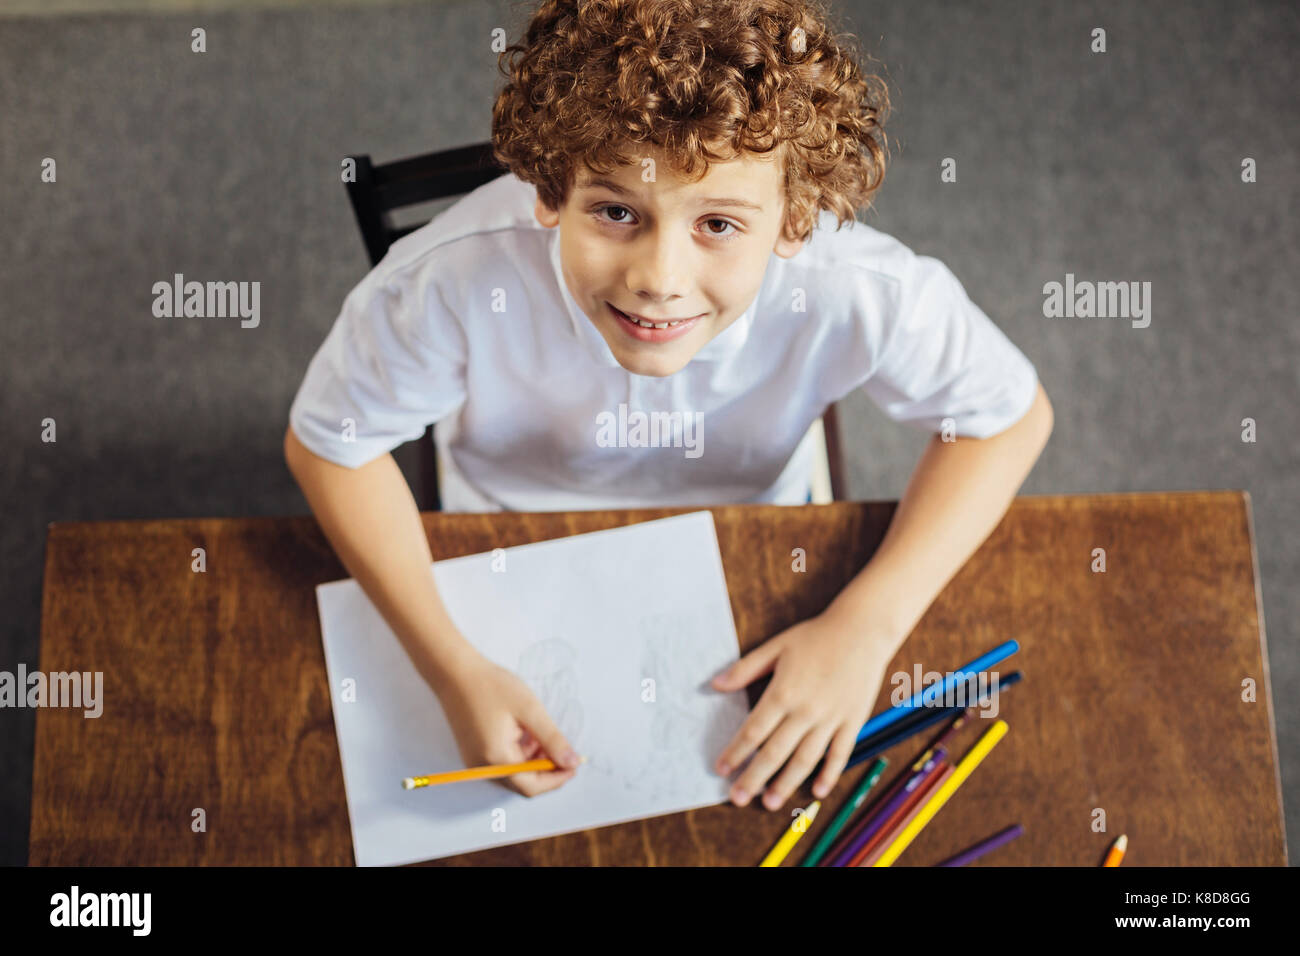 Preteen boy with curls looking into camera with slight smile - Stock Image